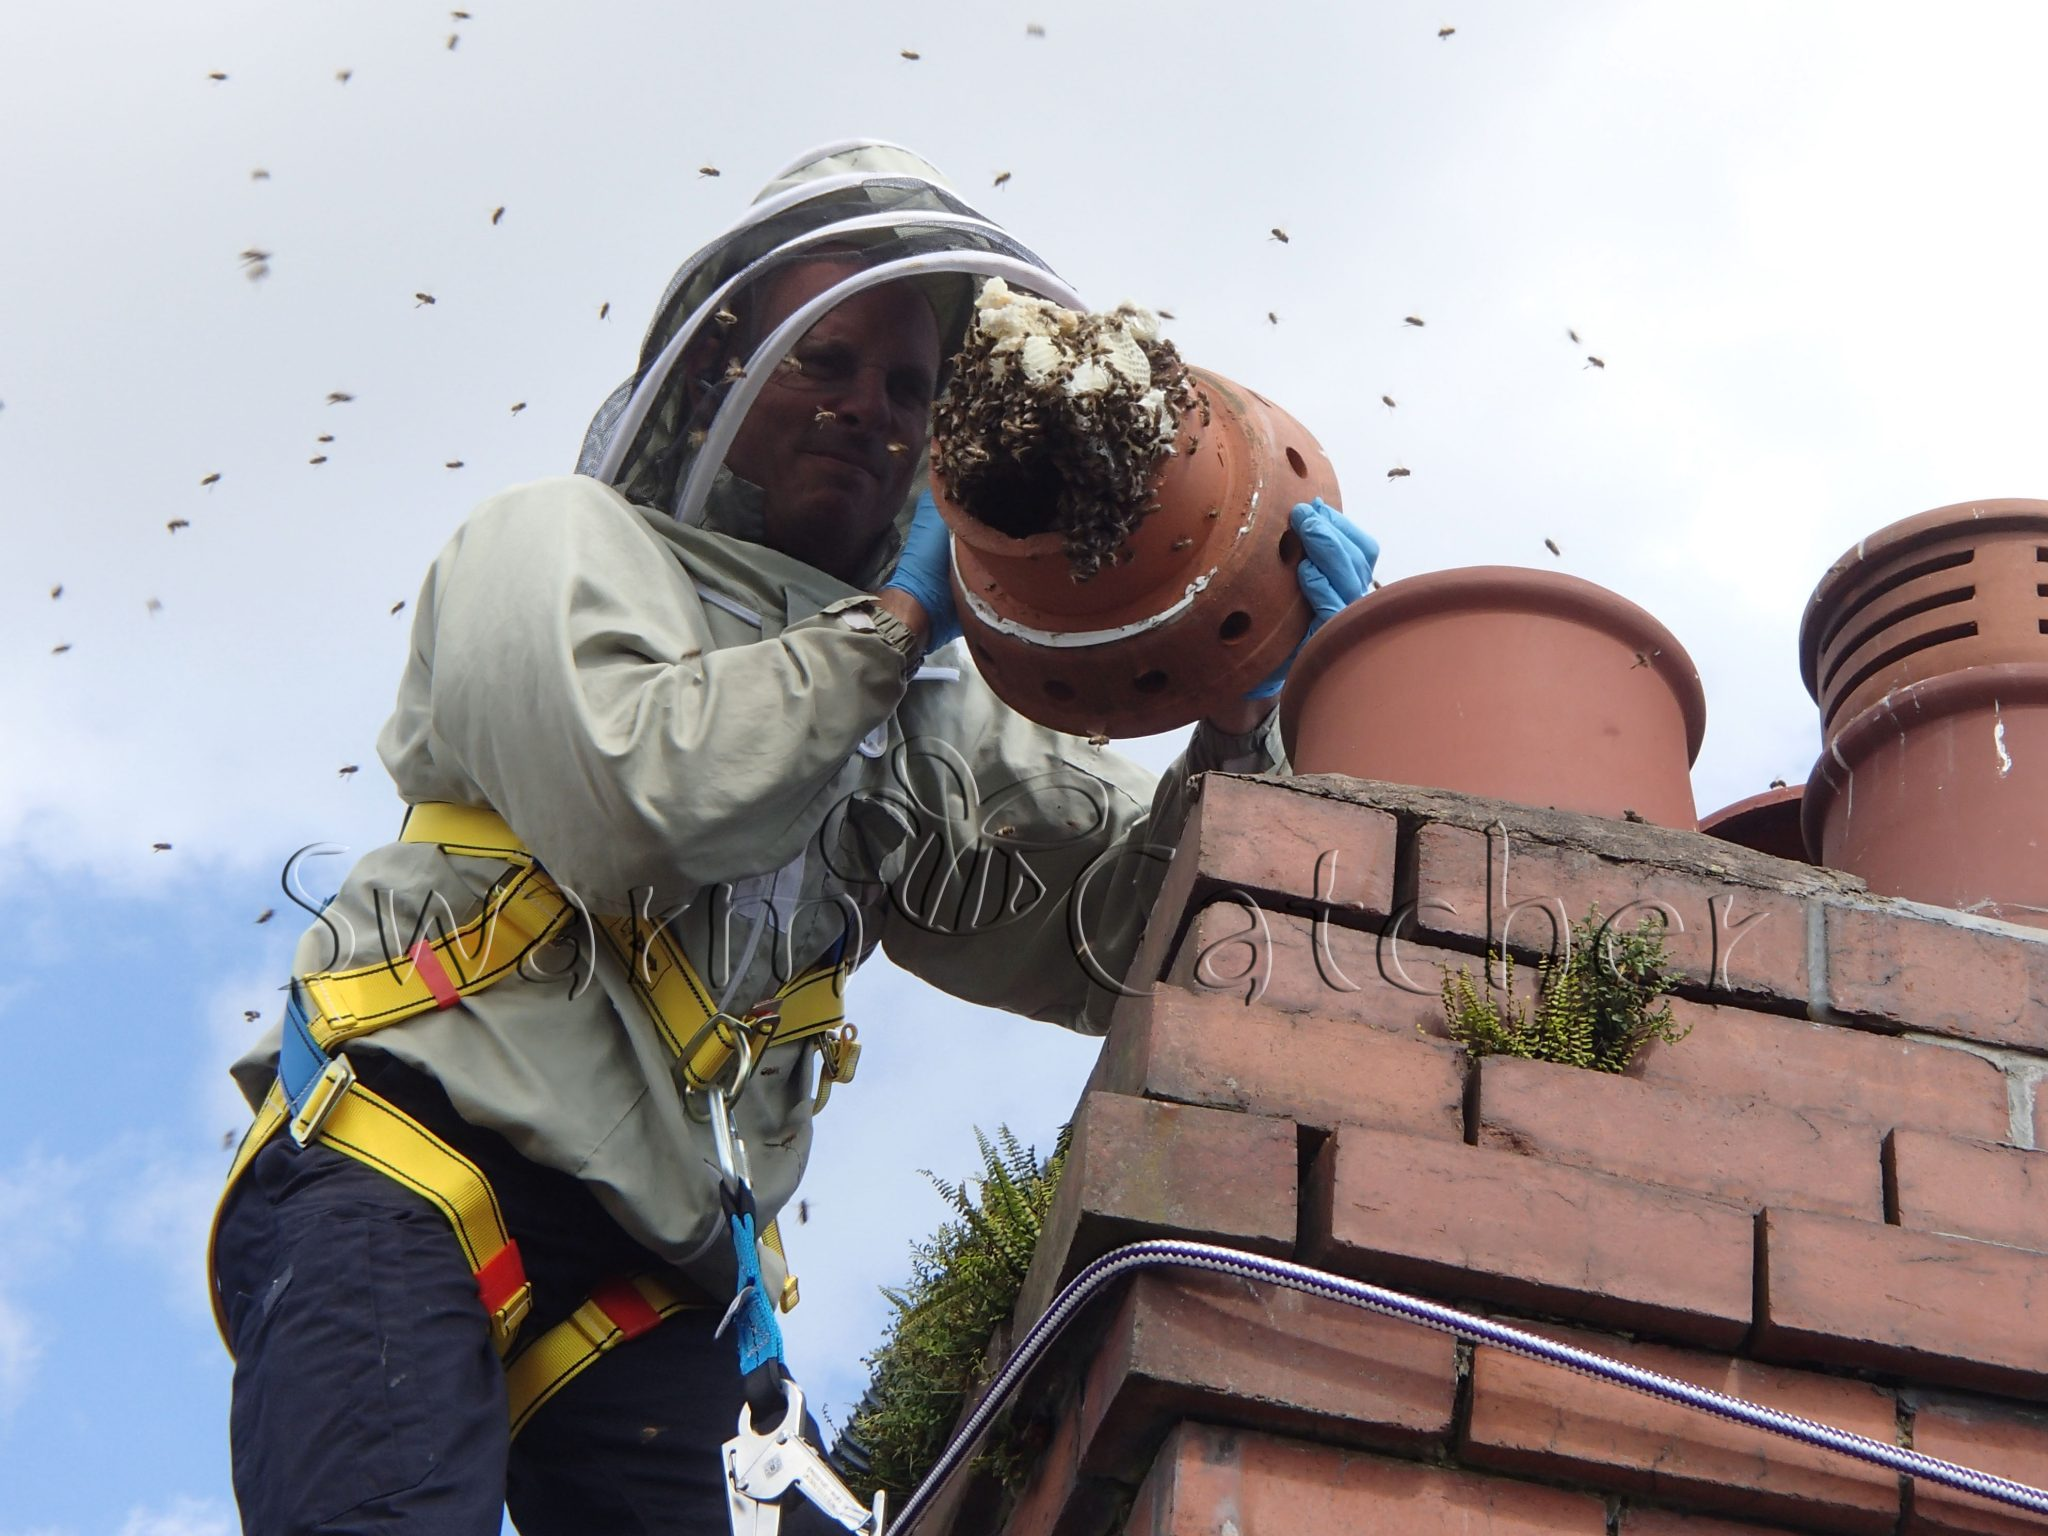 Honey bees Live honey bee colony removal of honey bees in chimney - Cardiff